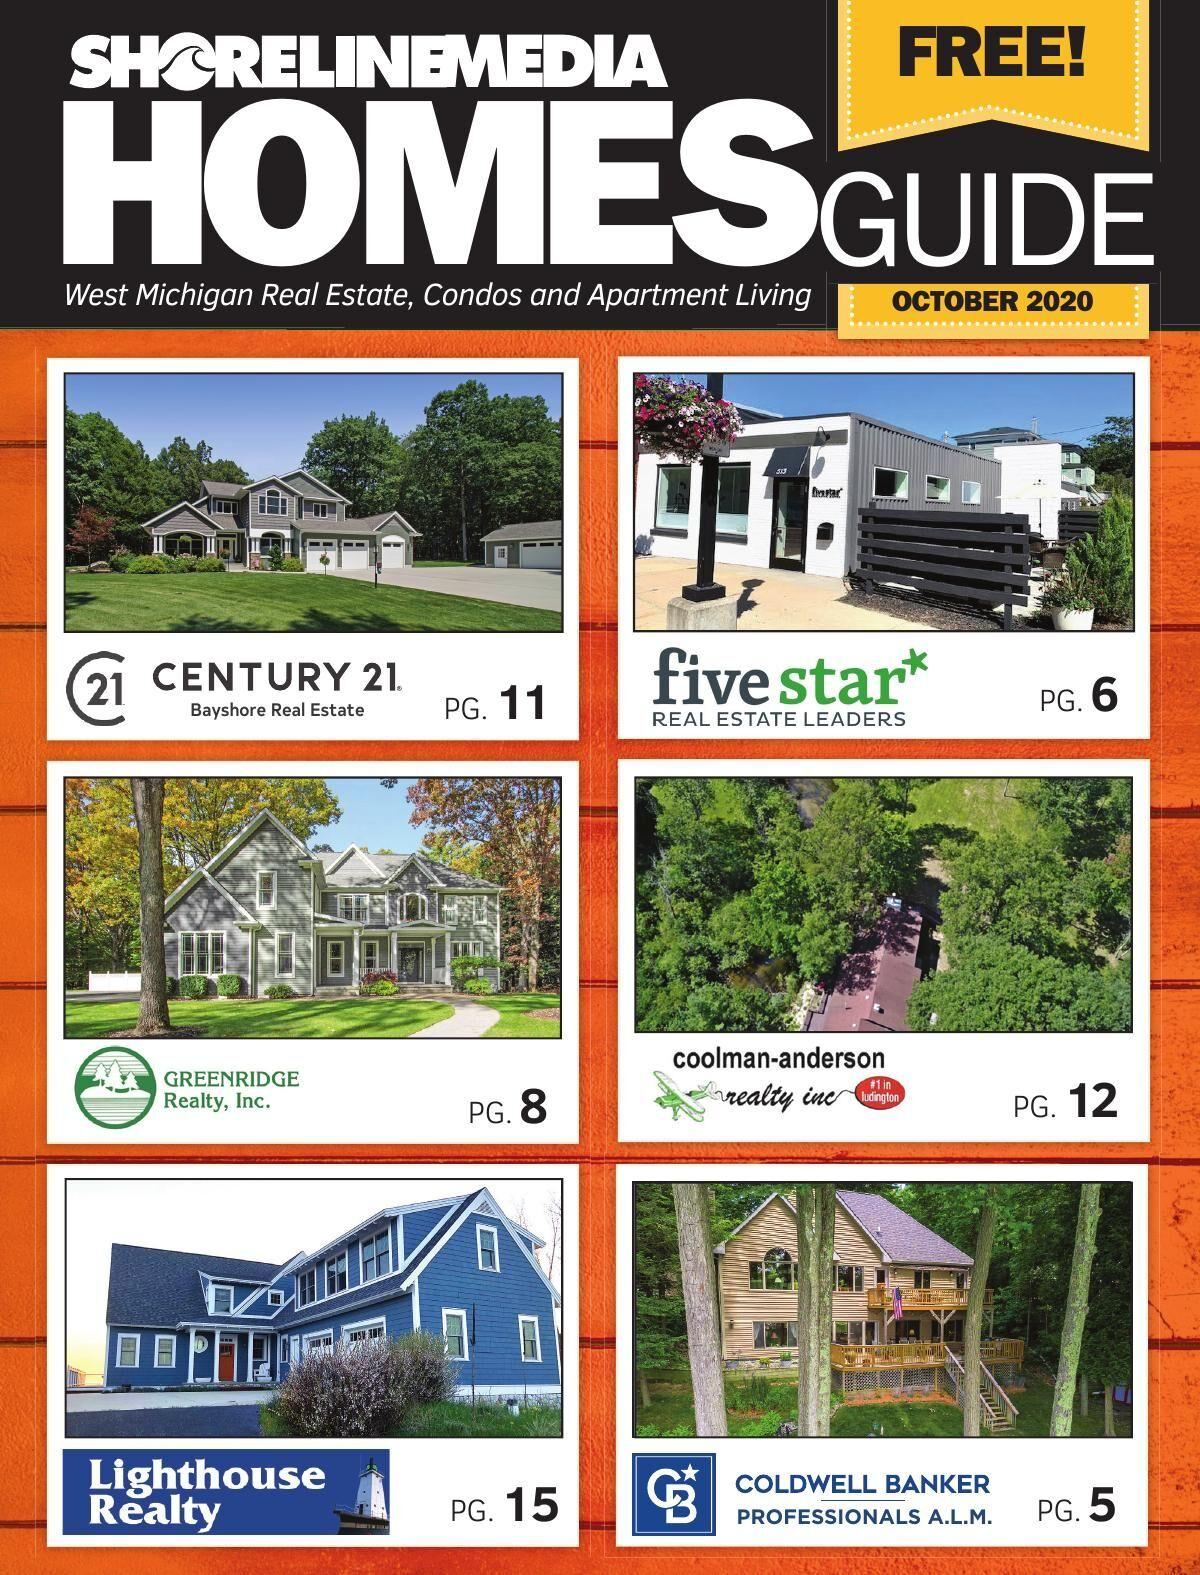 Homes Guide - October 2020